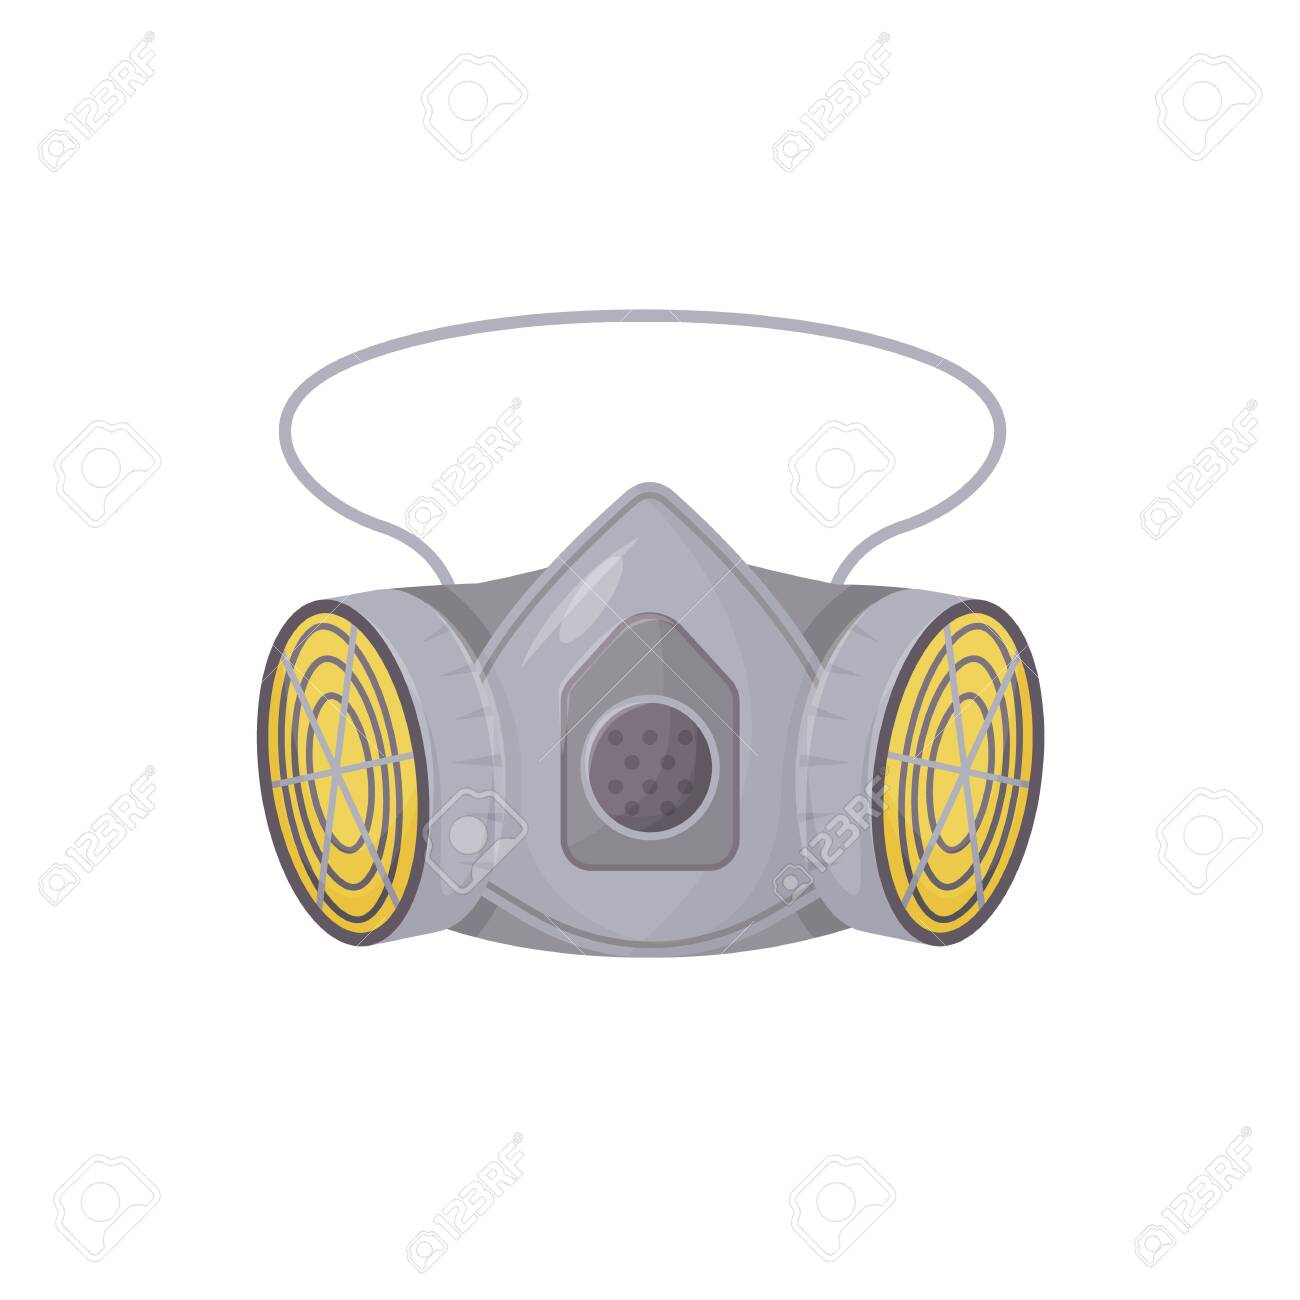 Powered air-purifying respirator cartoon vector illustration. Personal protective equipment, breathing wear flat color object. Air filtration accessory isolated on white background - 146674973